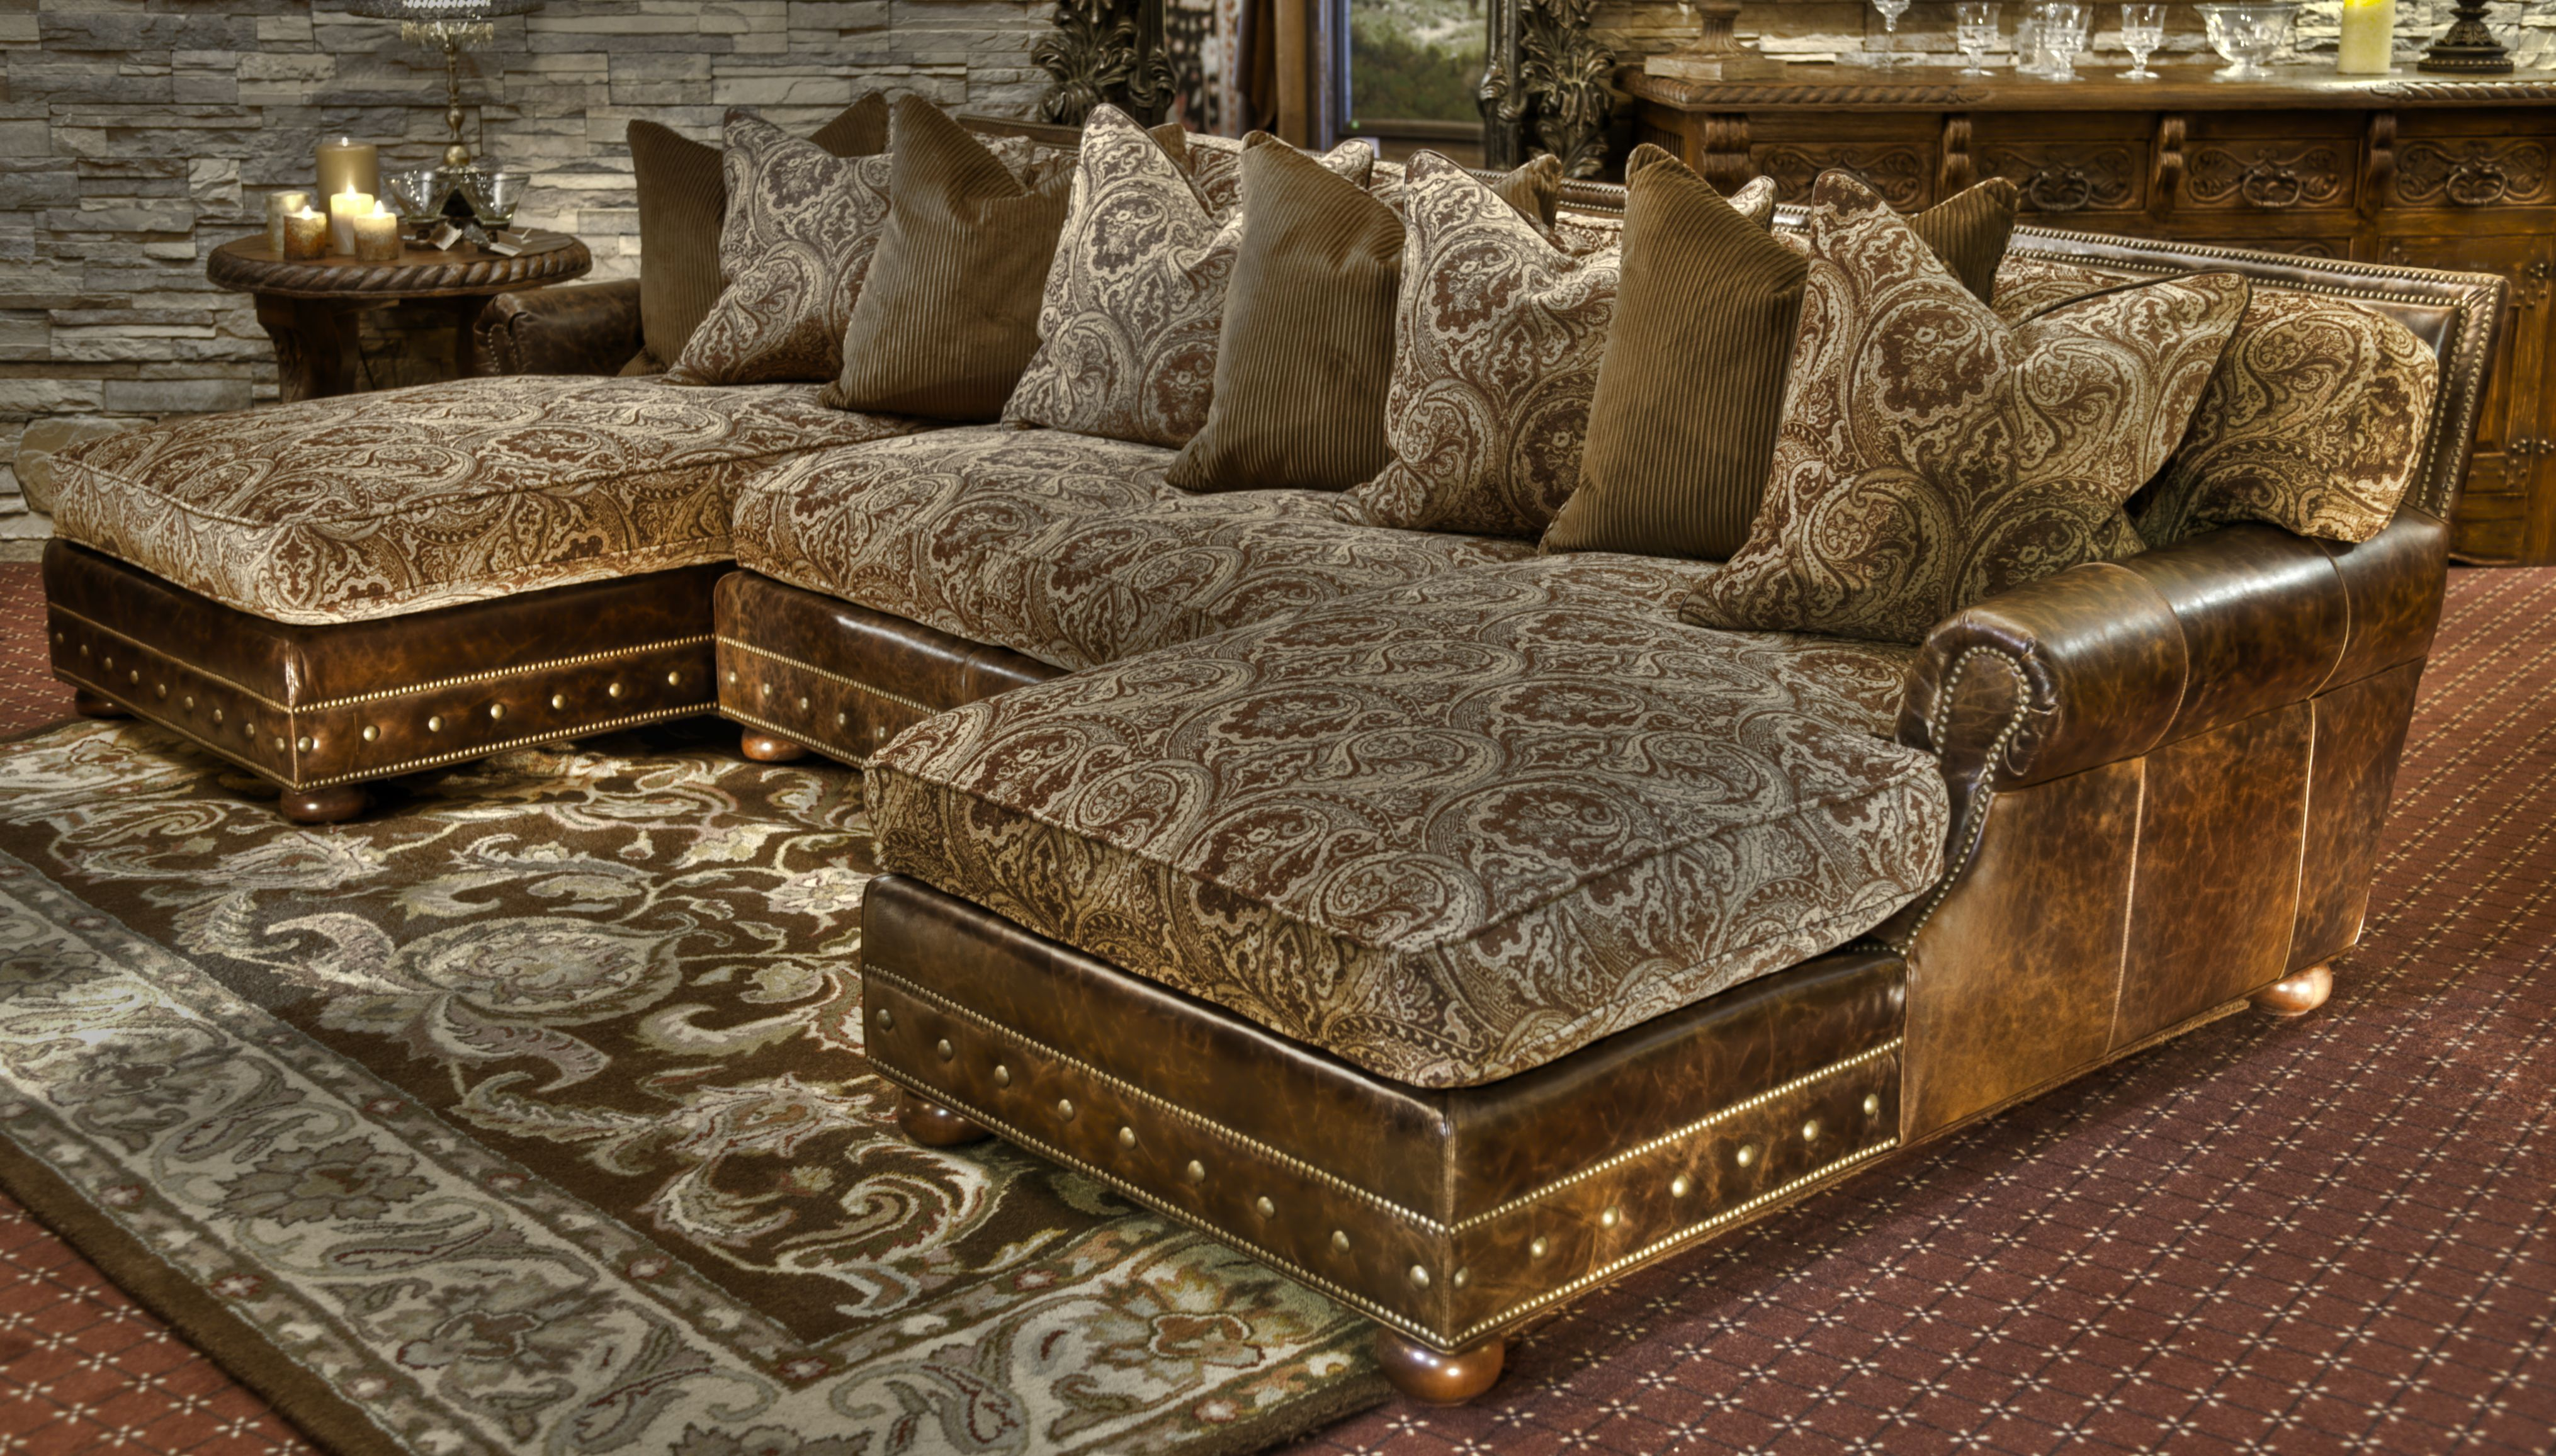 Our Paisley Pastures sofa will provide you and your family comfort for  years to come  Cozy Living RoomsLiving Room  Our Paisley Pastures sofa will provide you and your family comfort  . Paisley Couch Living Room Furniture. Home Design Ideas